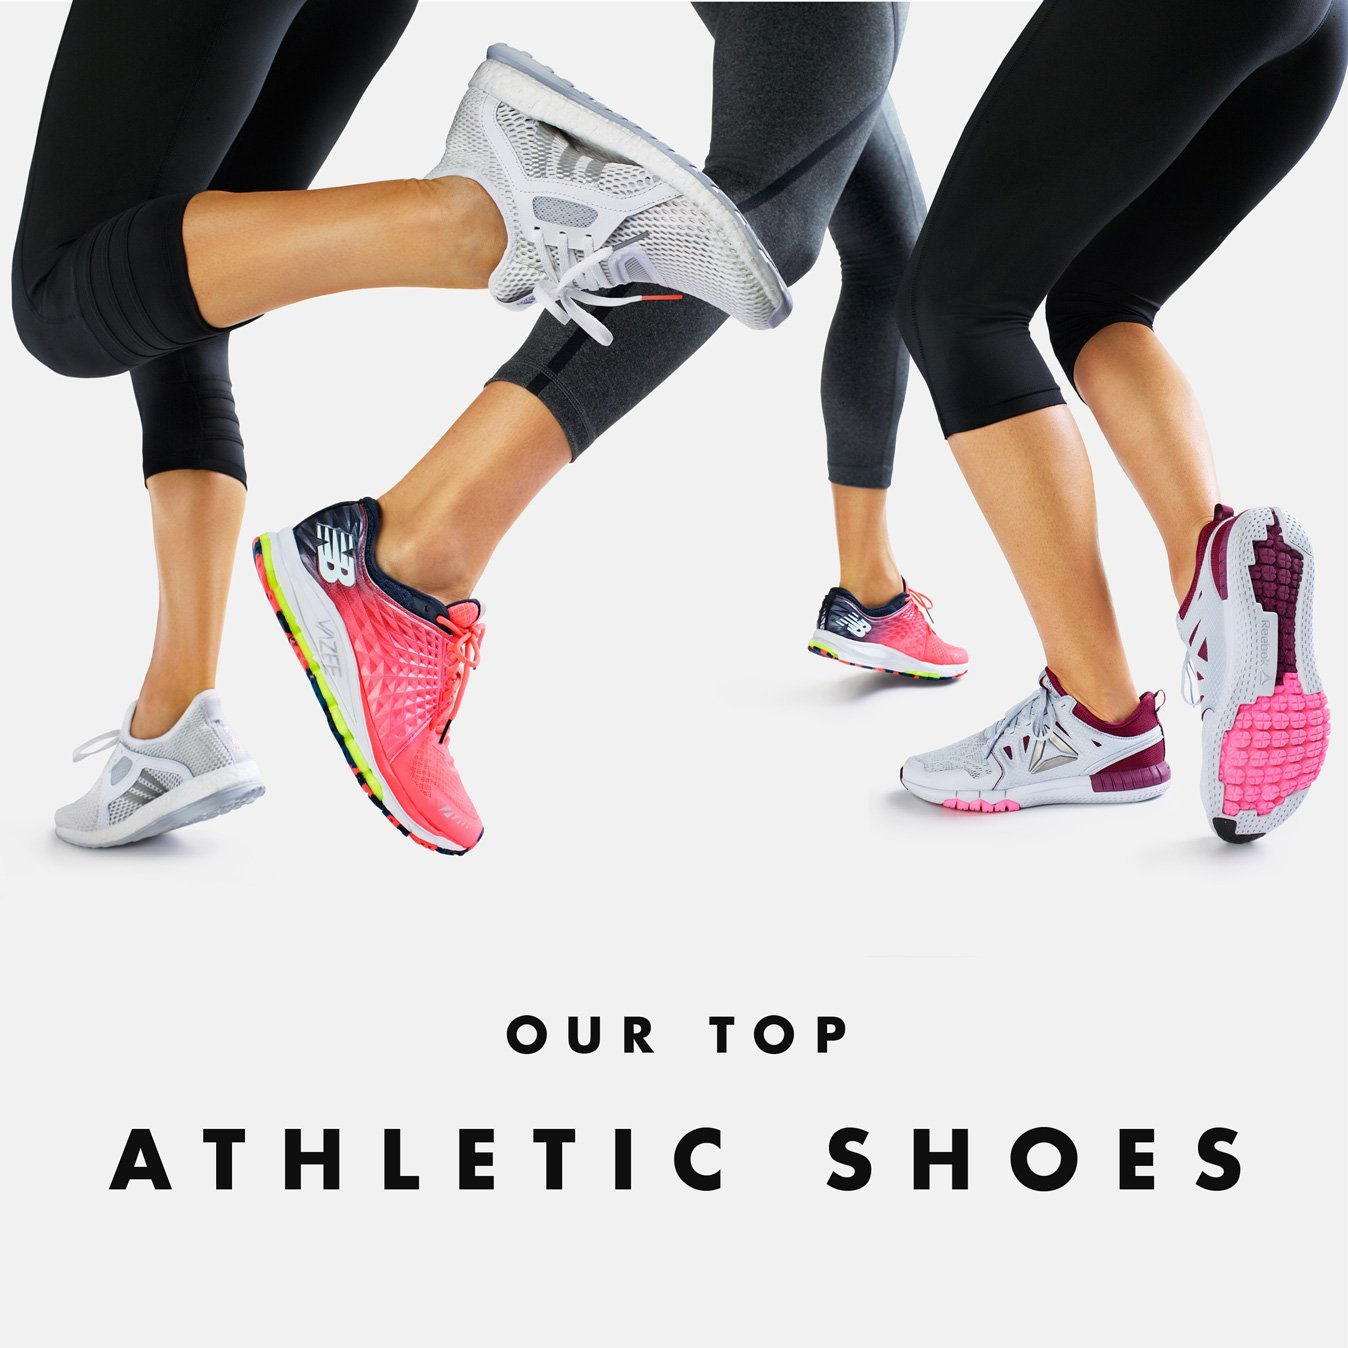 Our Top Athletic Shoes